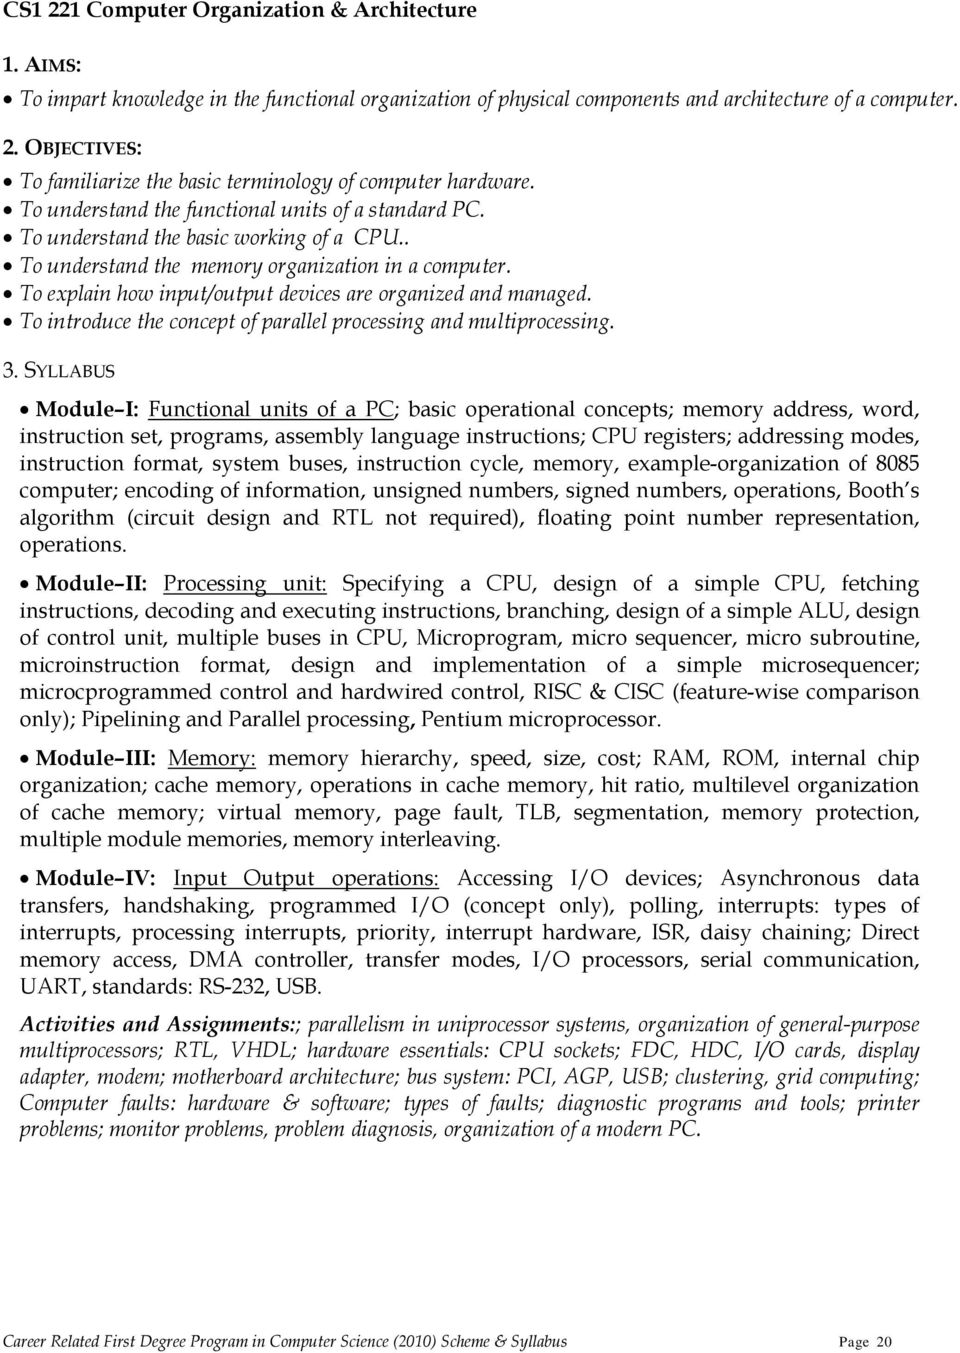 Career related first degree programme in computer science scheme to explain how inputoutput devices are organized and managed to introduce the concept fandeluxe Image collections